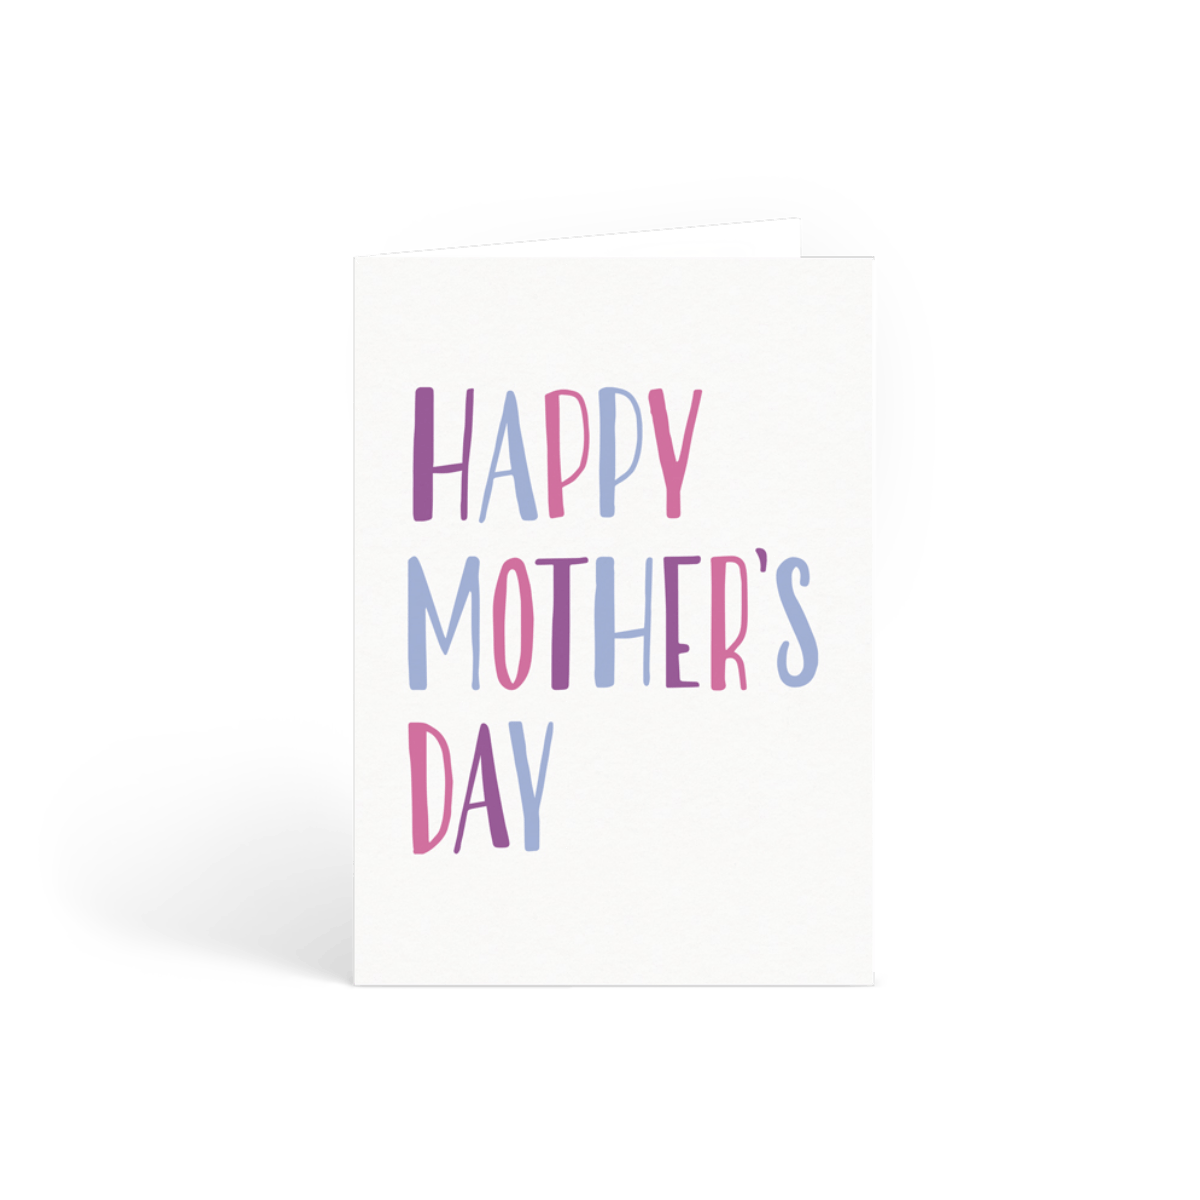 Https%3a%2f%2fwww.papier.com%2fproduct image%2f17916%2f2%2fhappy mother s day 4673 avant 1486634519.png?ixlib=rb 1.1